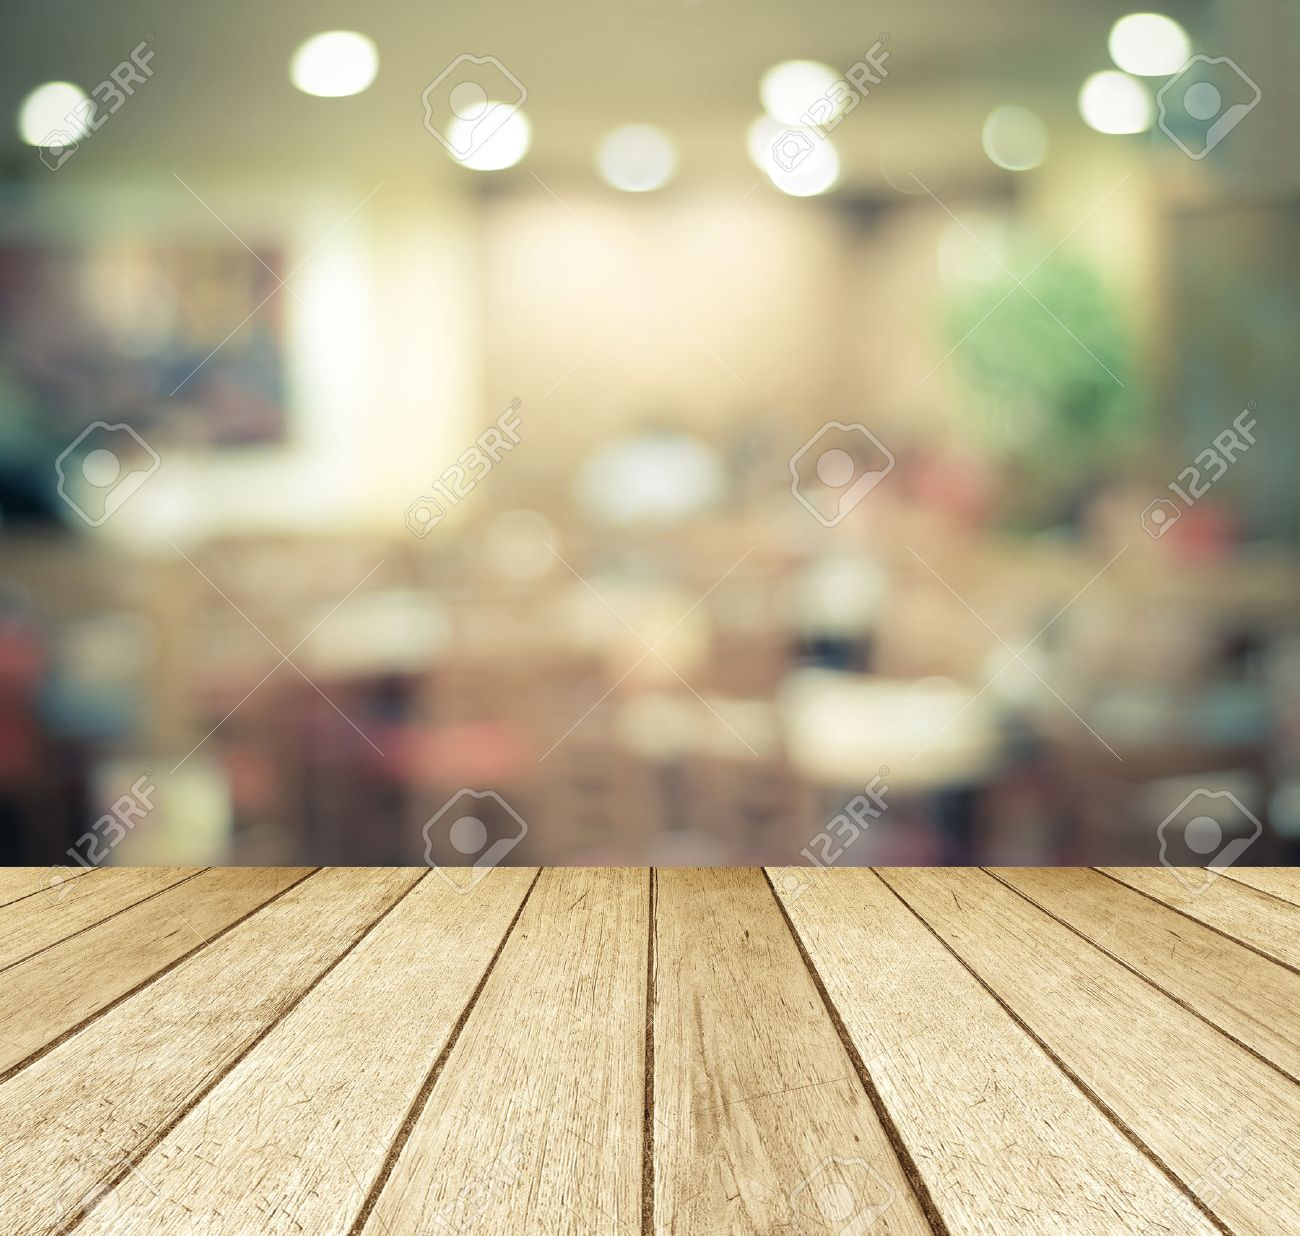 Plain wood table with hipster brick wall background stock photo - Wood Table Perspective Perspective Wood Over Blurred Restaurant With Bokeh Background Foods And Drinks